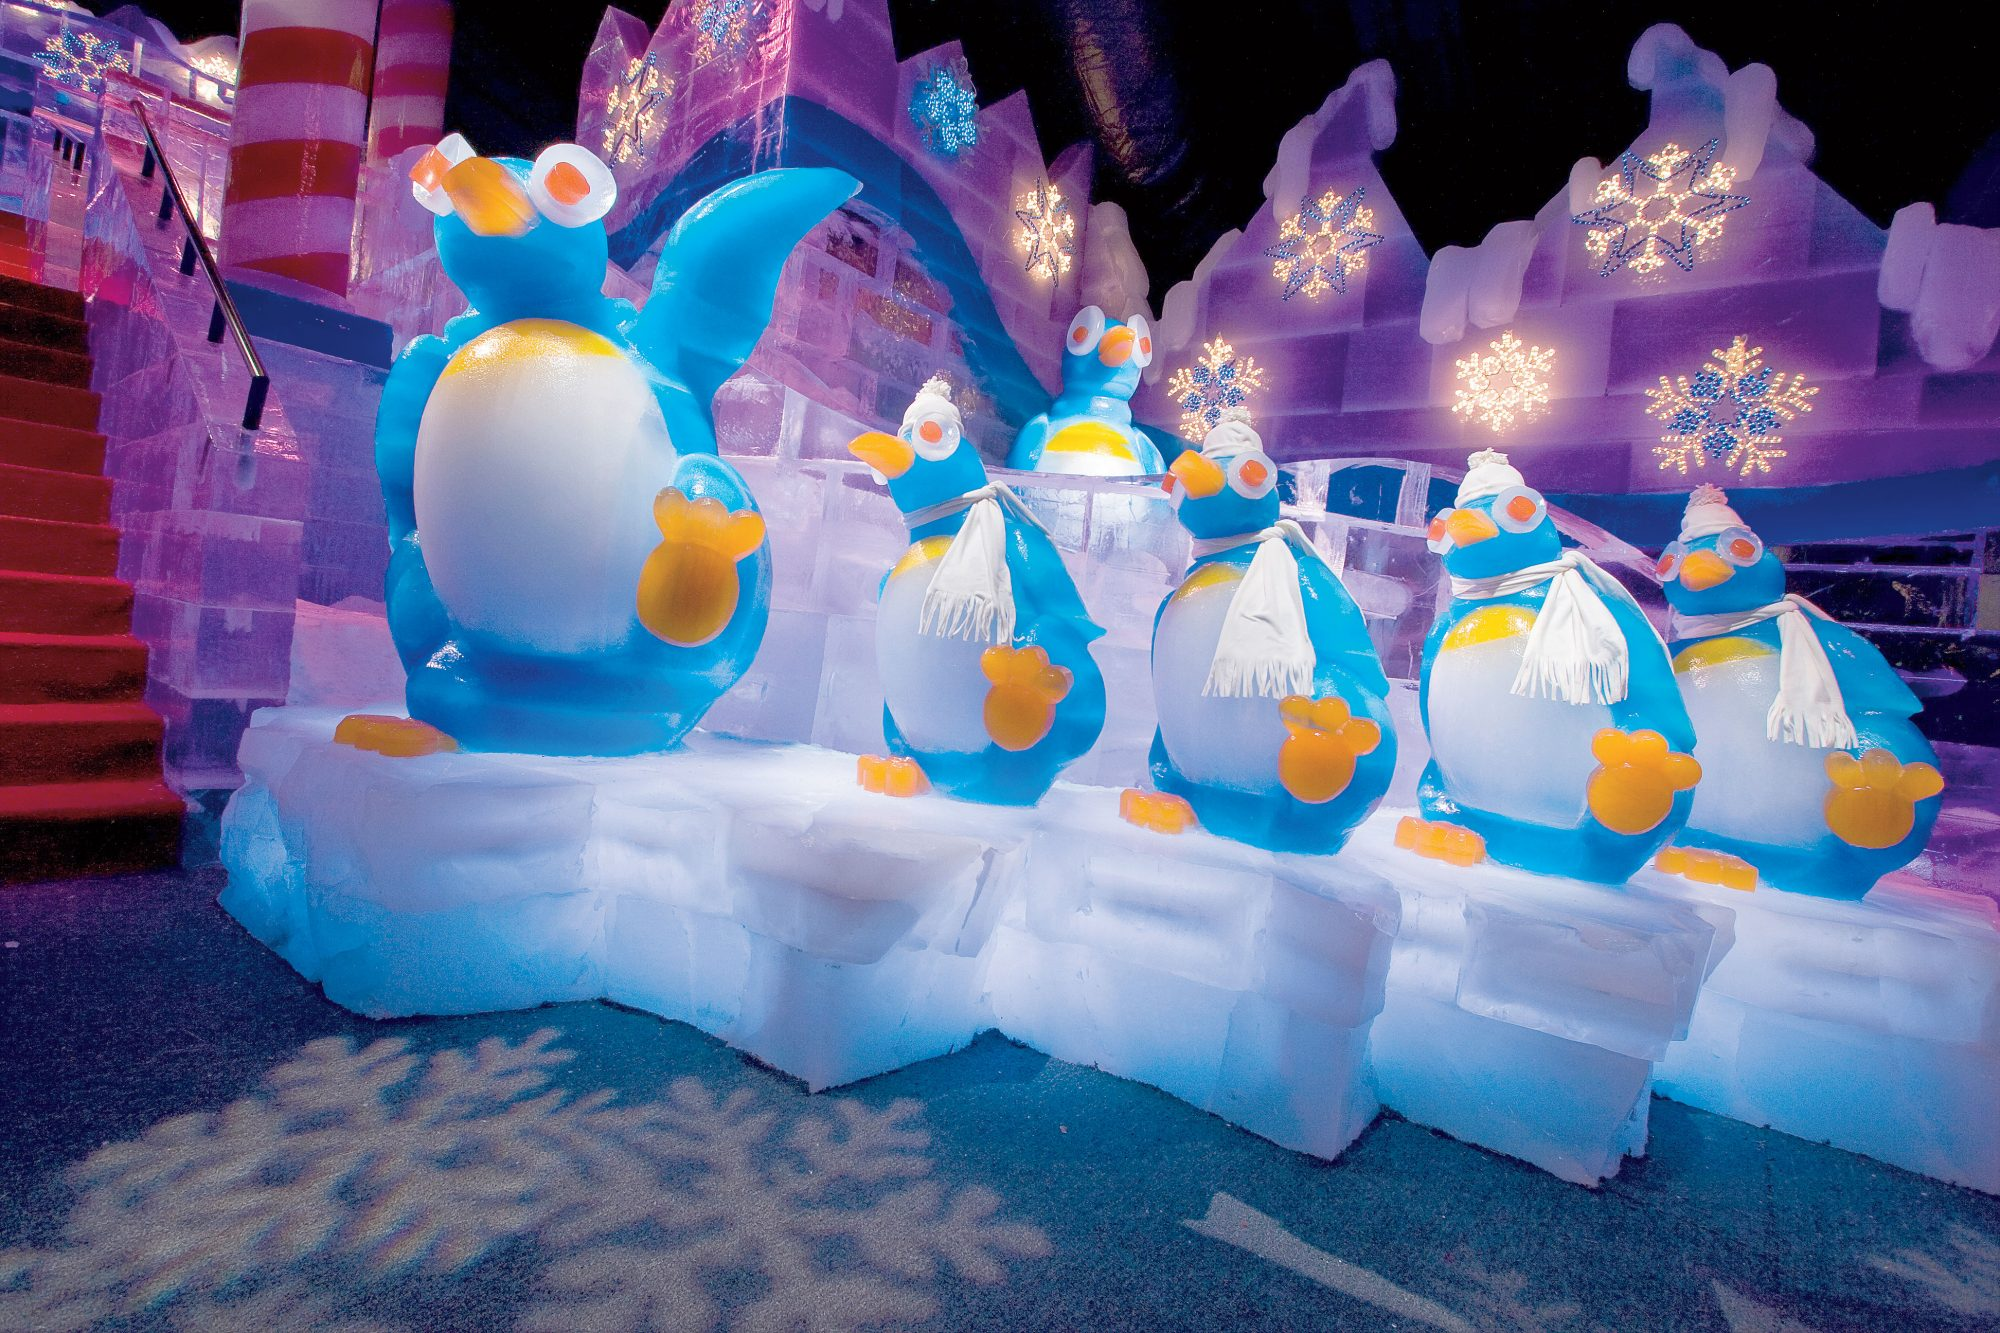 Southern Christmas Vacations: ICE! at Gaylord Palms